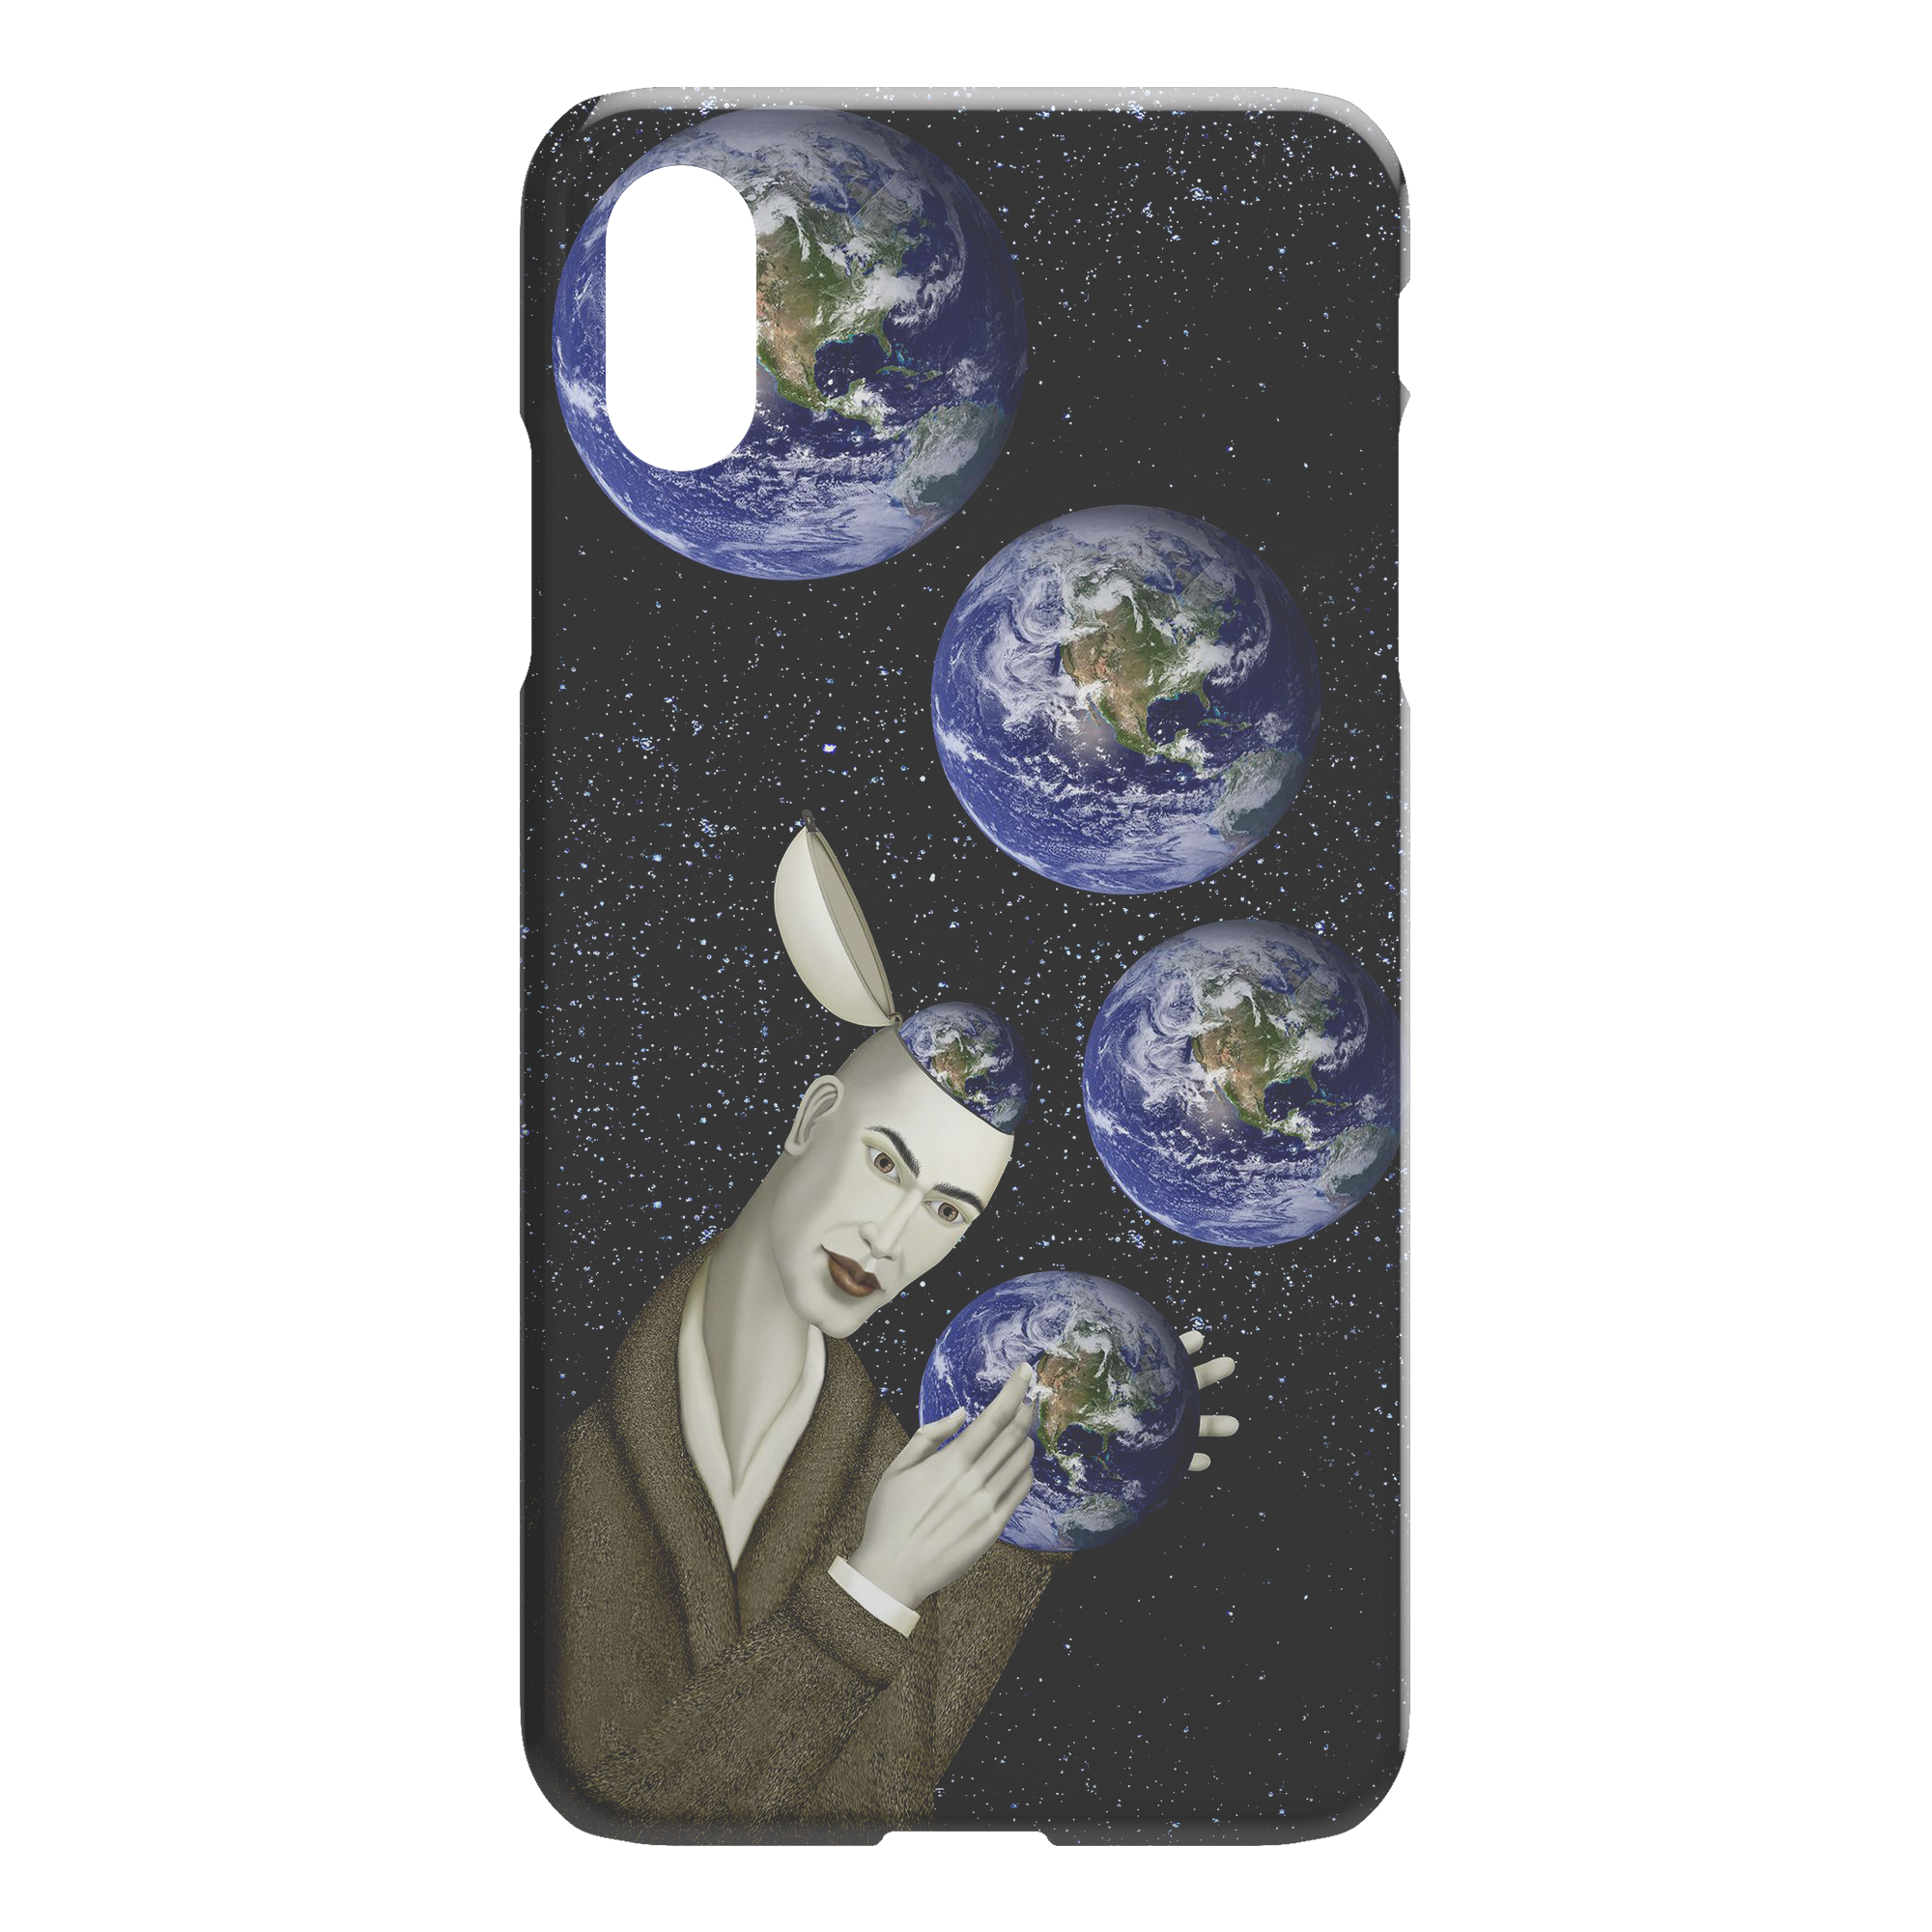 Wonderful World - iPhone case